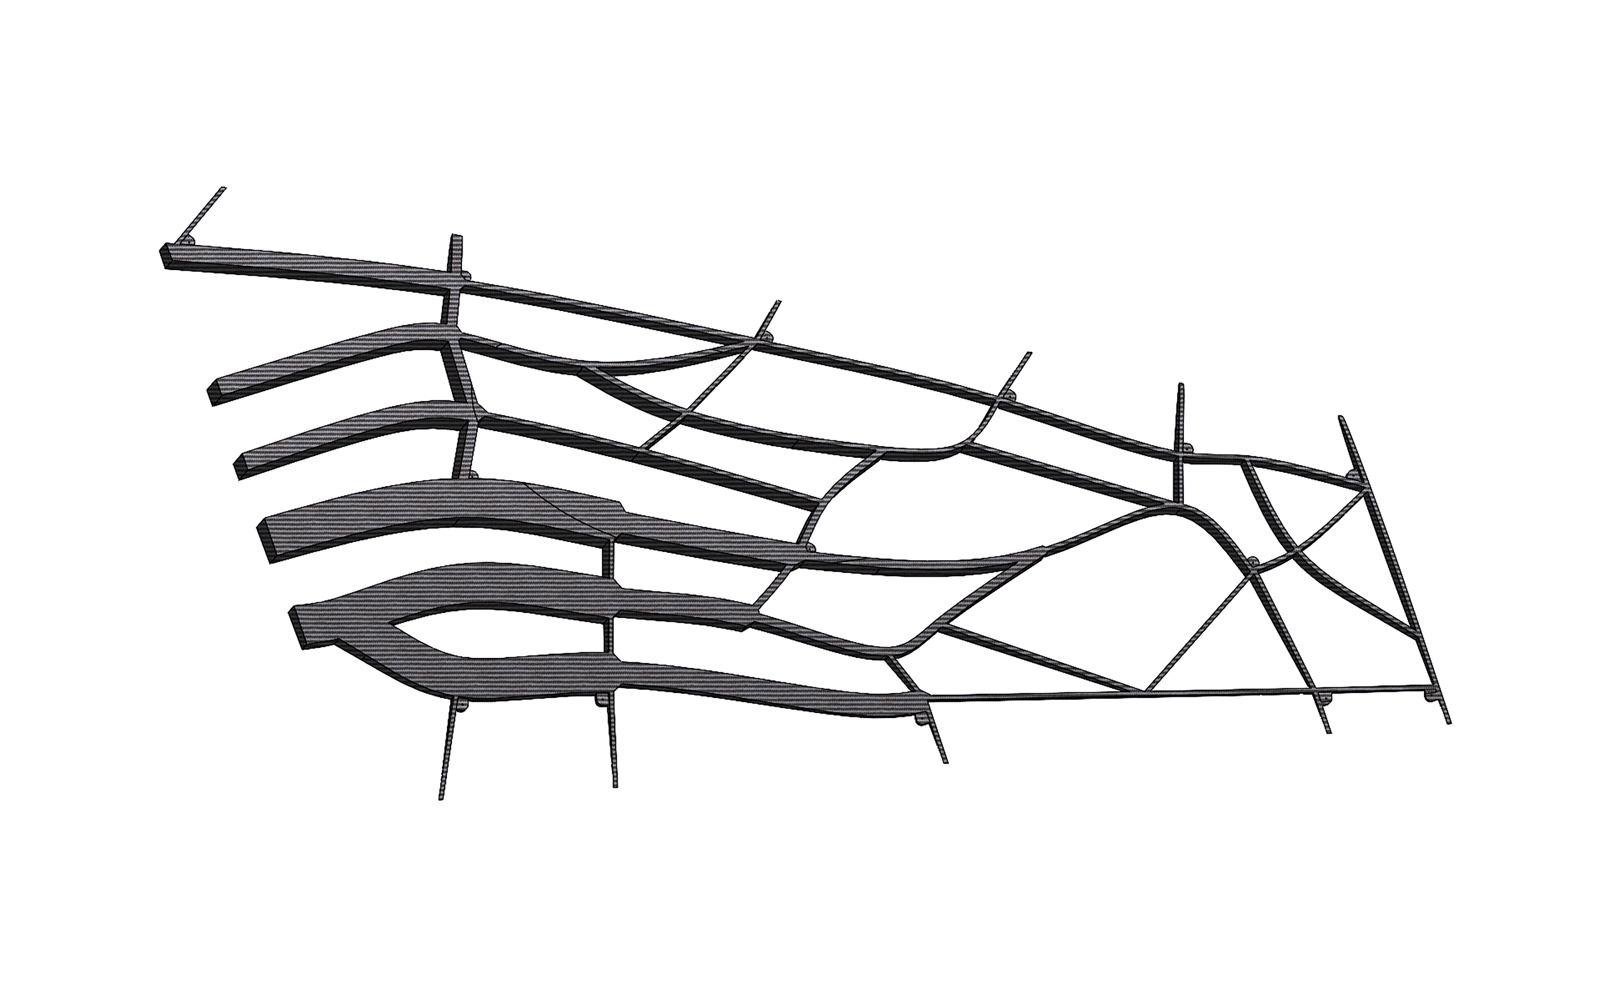 Single component, organically integrated wing spar and rib configuration